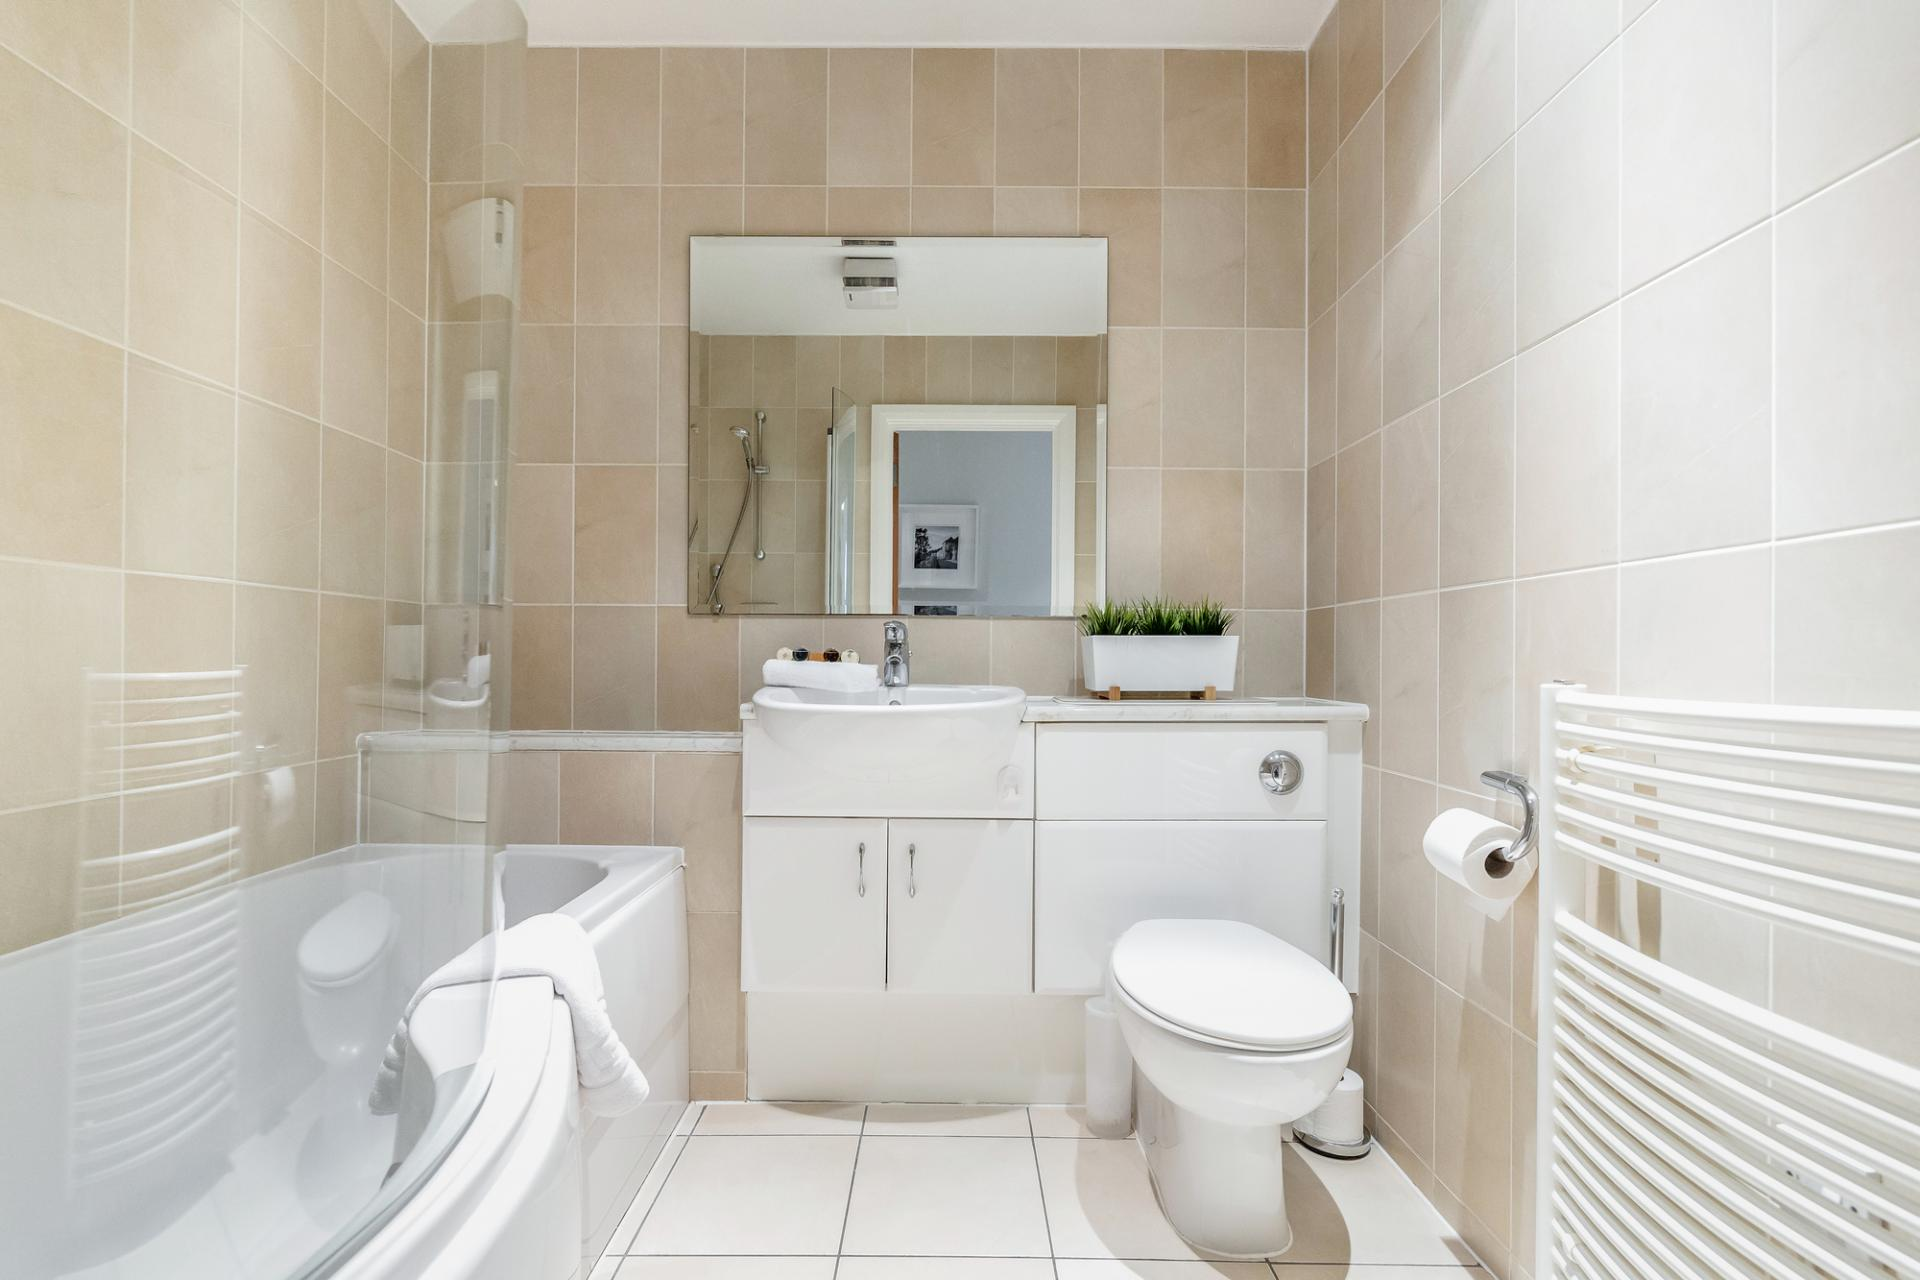 Bathroom at Thames Edge Apartments, Centre, Staines